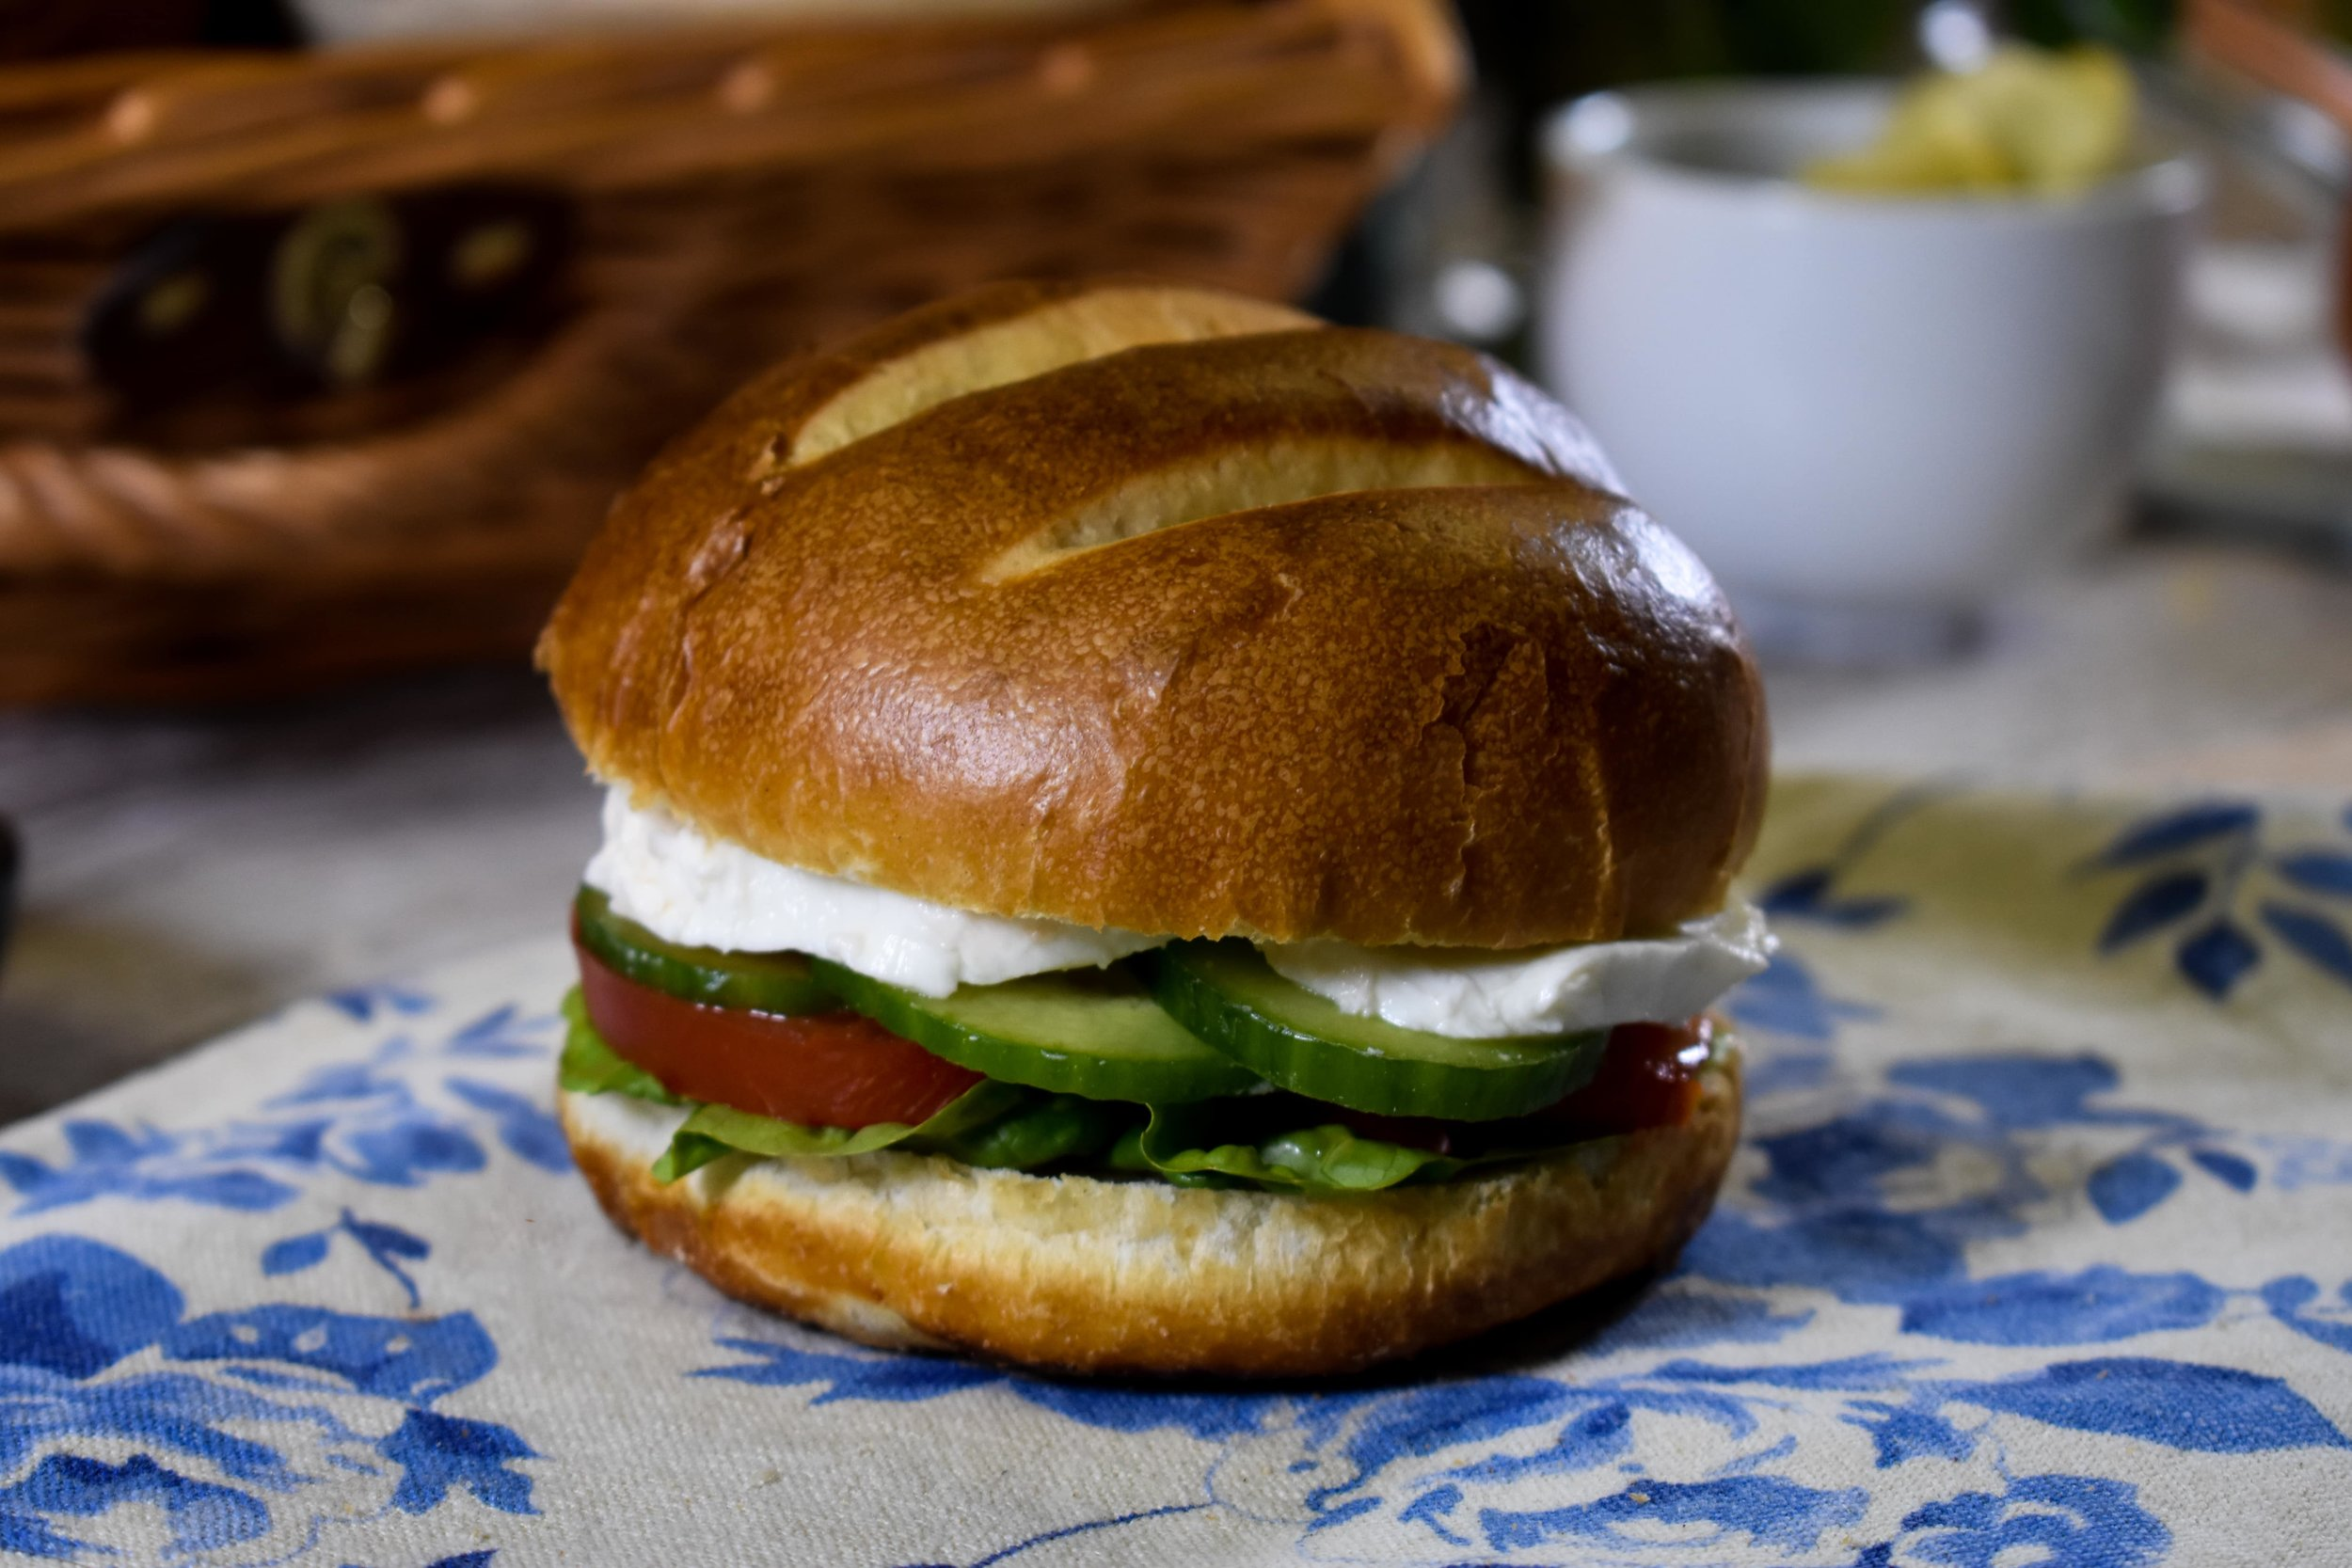 Pretzel Bun filled with lettuce, tomato, cucumber and mozzarella